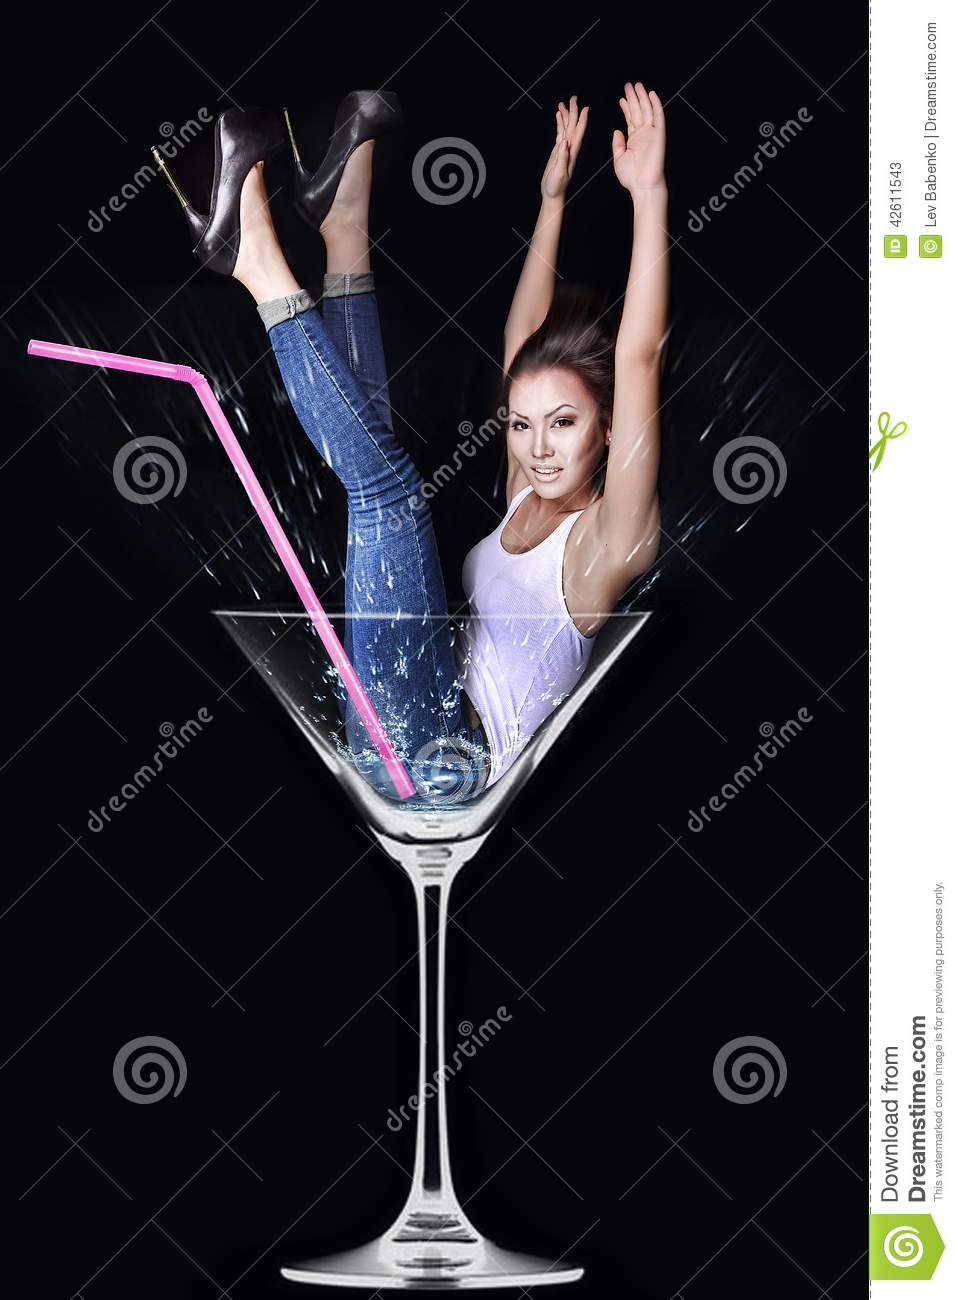 Woman In Martini Glass Stock Image Image Of Female Adult